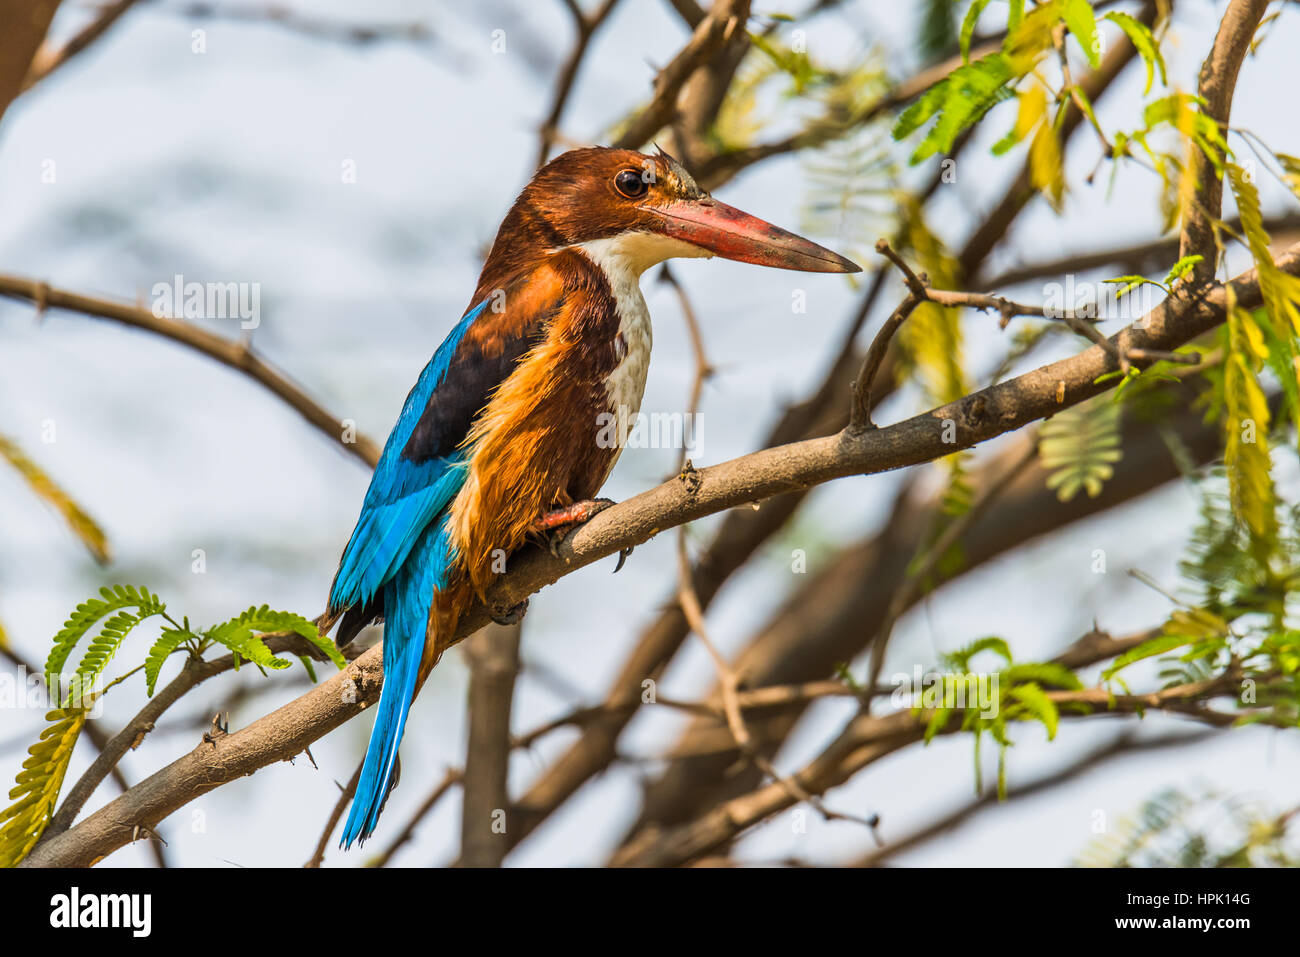 White-throated kingfisher perched - Stock Image